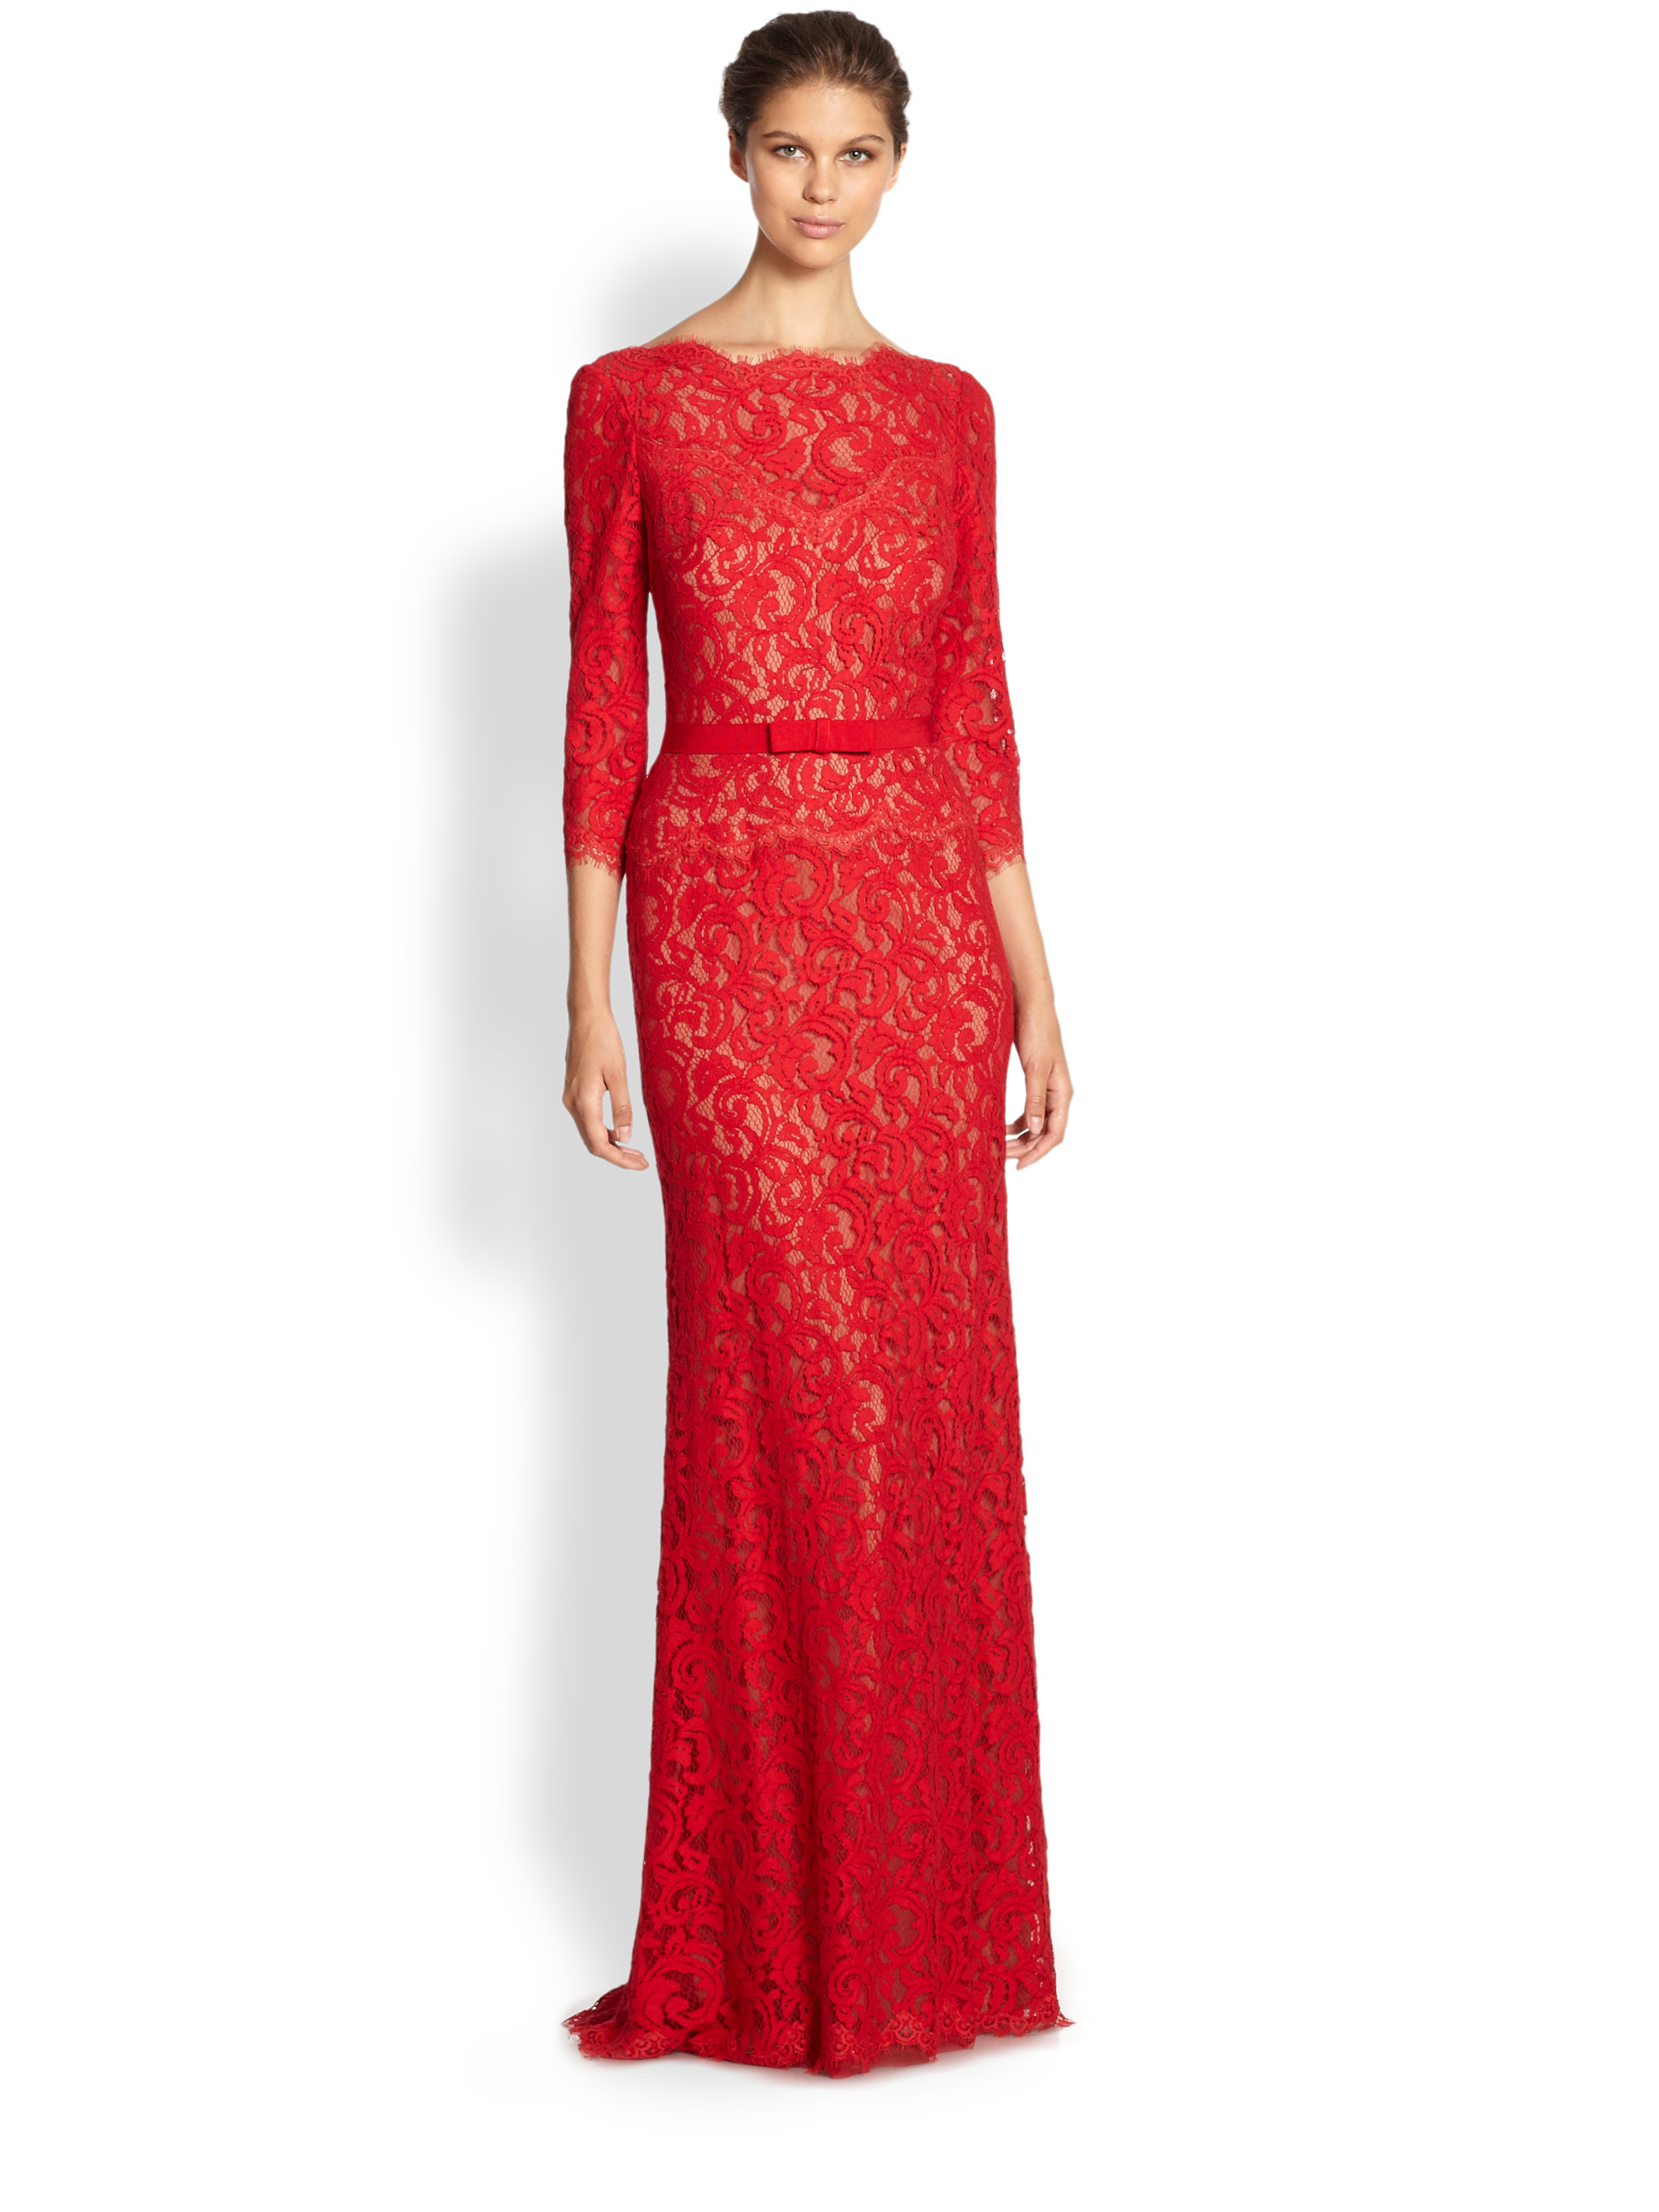 Tadashi shoji Illusion Lace Gown in Red  Lyst